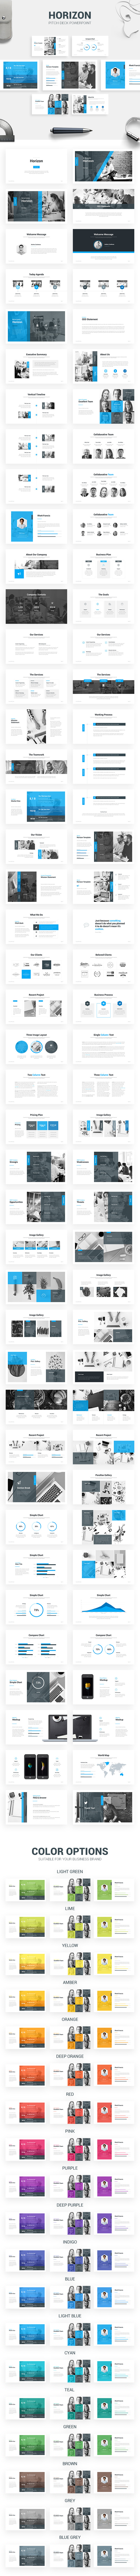 GraphicRiver Horizon Pitch Deck Template 20912791